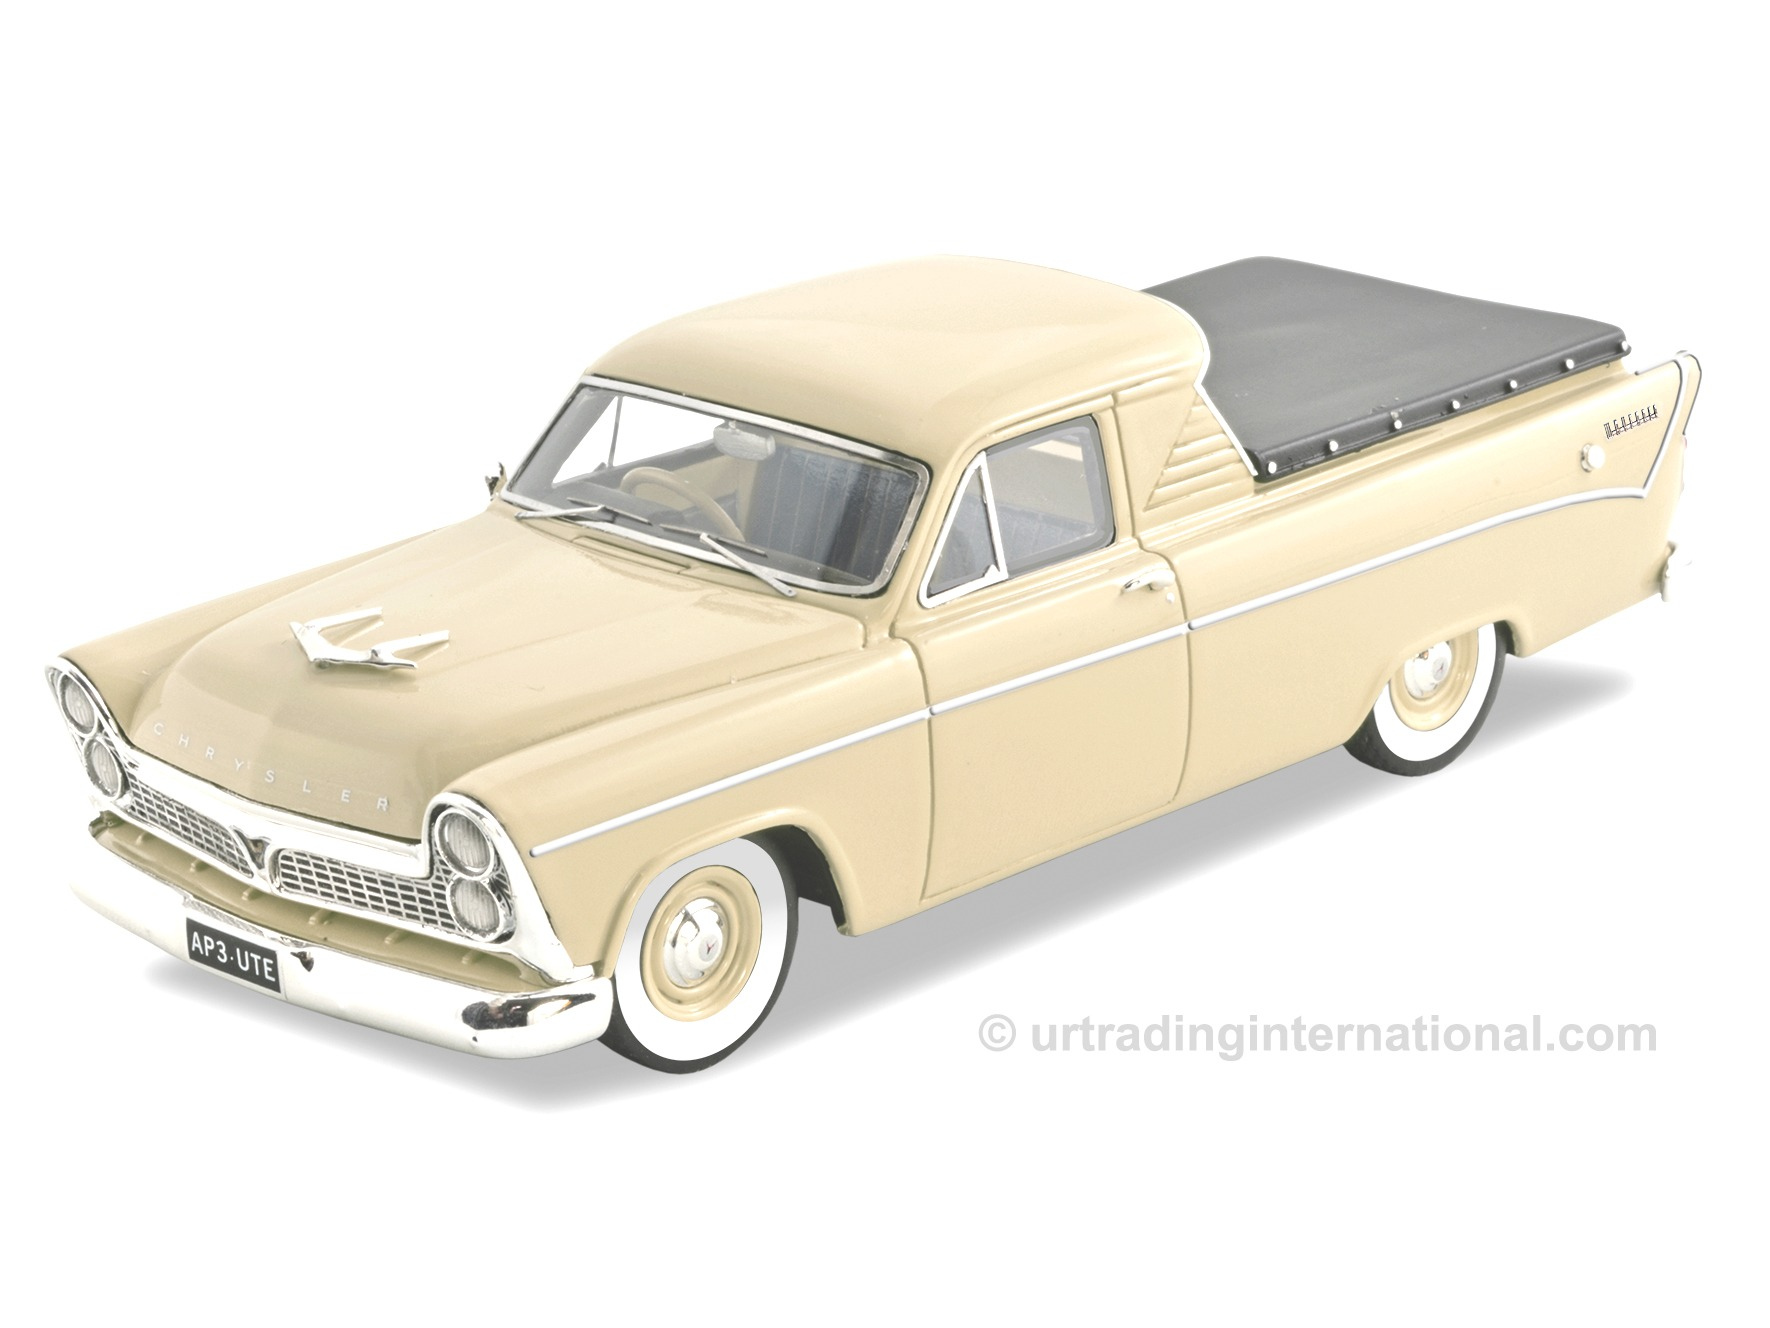 Chrysler Royal AP3 Wayfarer Ute – Cream